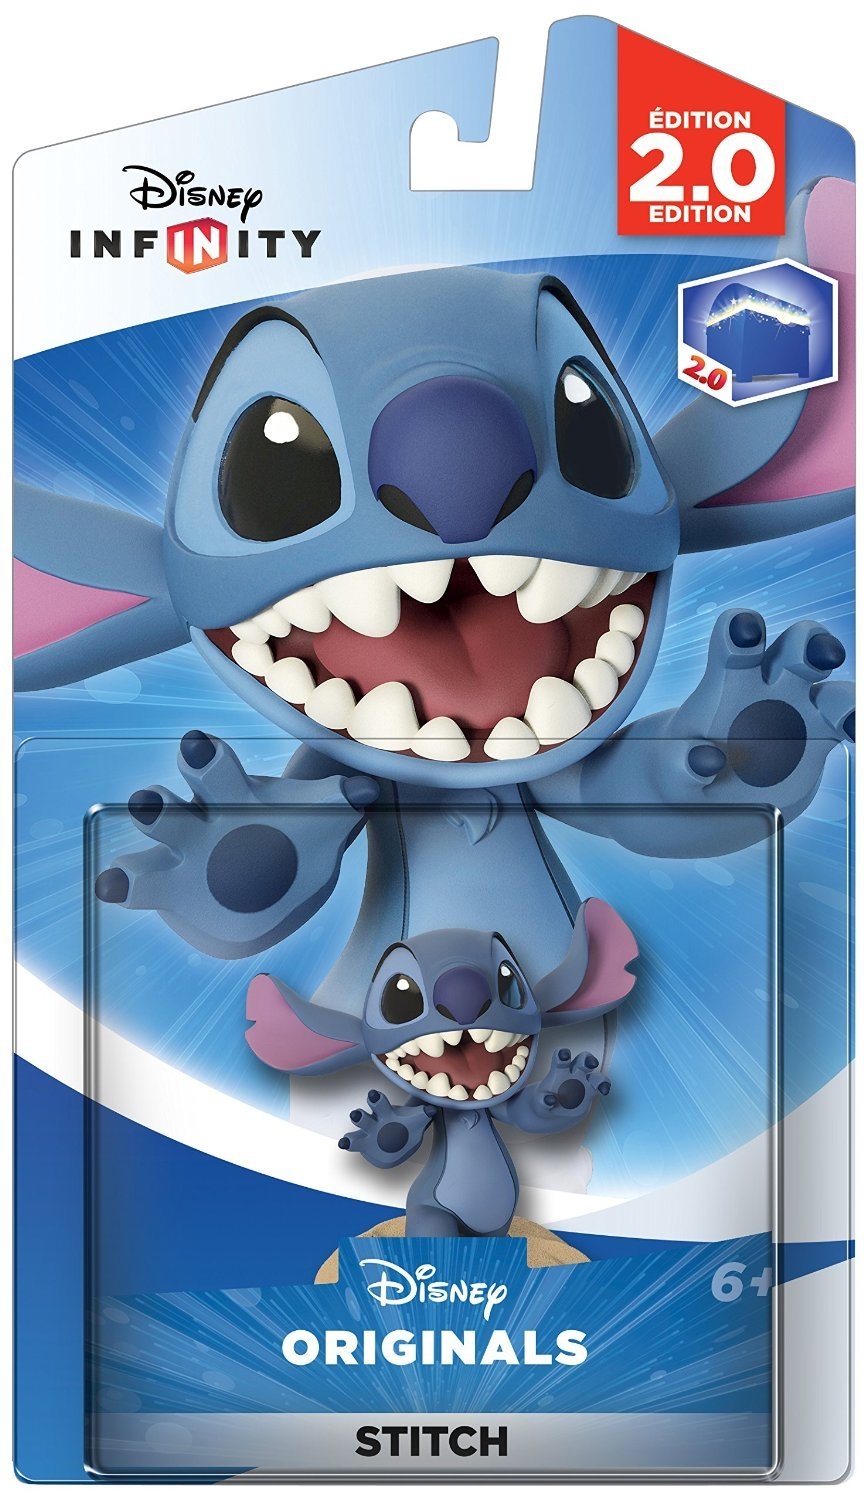 Disney Infinity: Disney Originals (2.0 Edition) Stitch Figure - Not Machine Specific by Disney Infinity (Image #1)